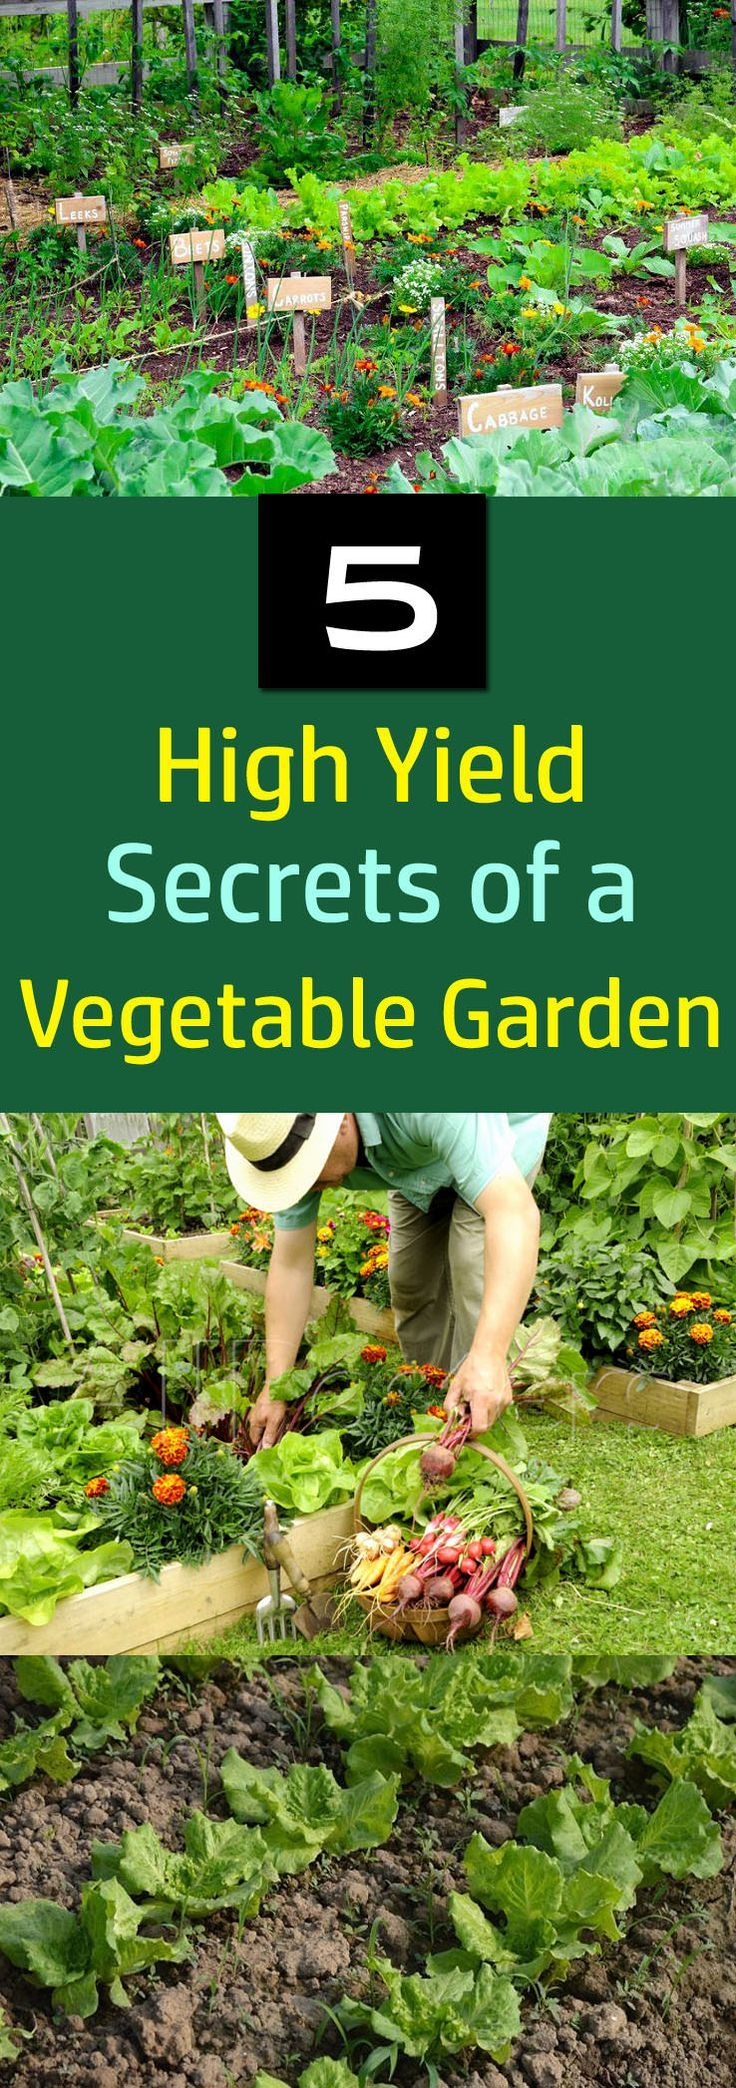 5 Secrets of a High Yield Gardening is part of Organic vegetable garden, Veggie garden, Vegetable garden, Winter vegetables gardening, Growing vegetables, Organic gardening tips - Love growing your own vegetables  These 5 high yield gardening tips will help you to increase the productivity of your garden